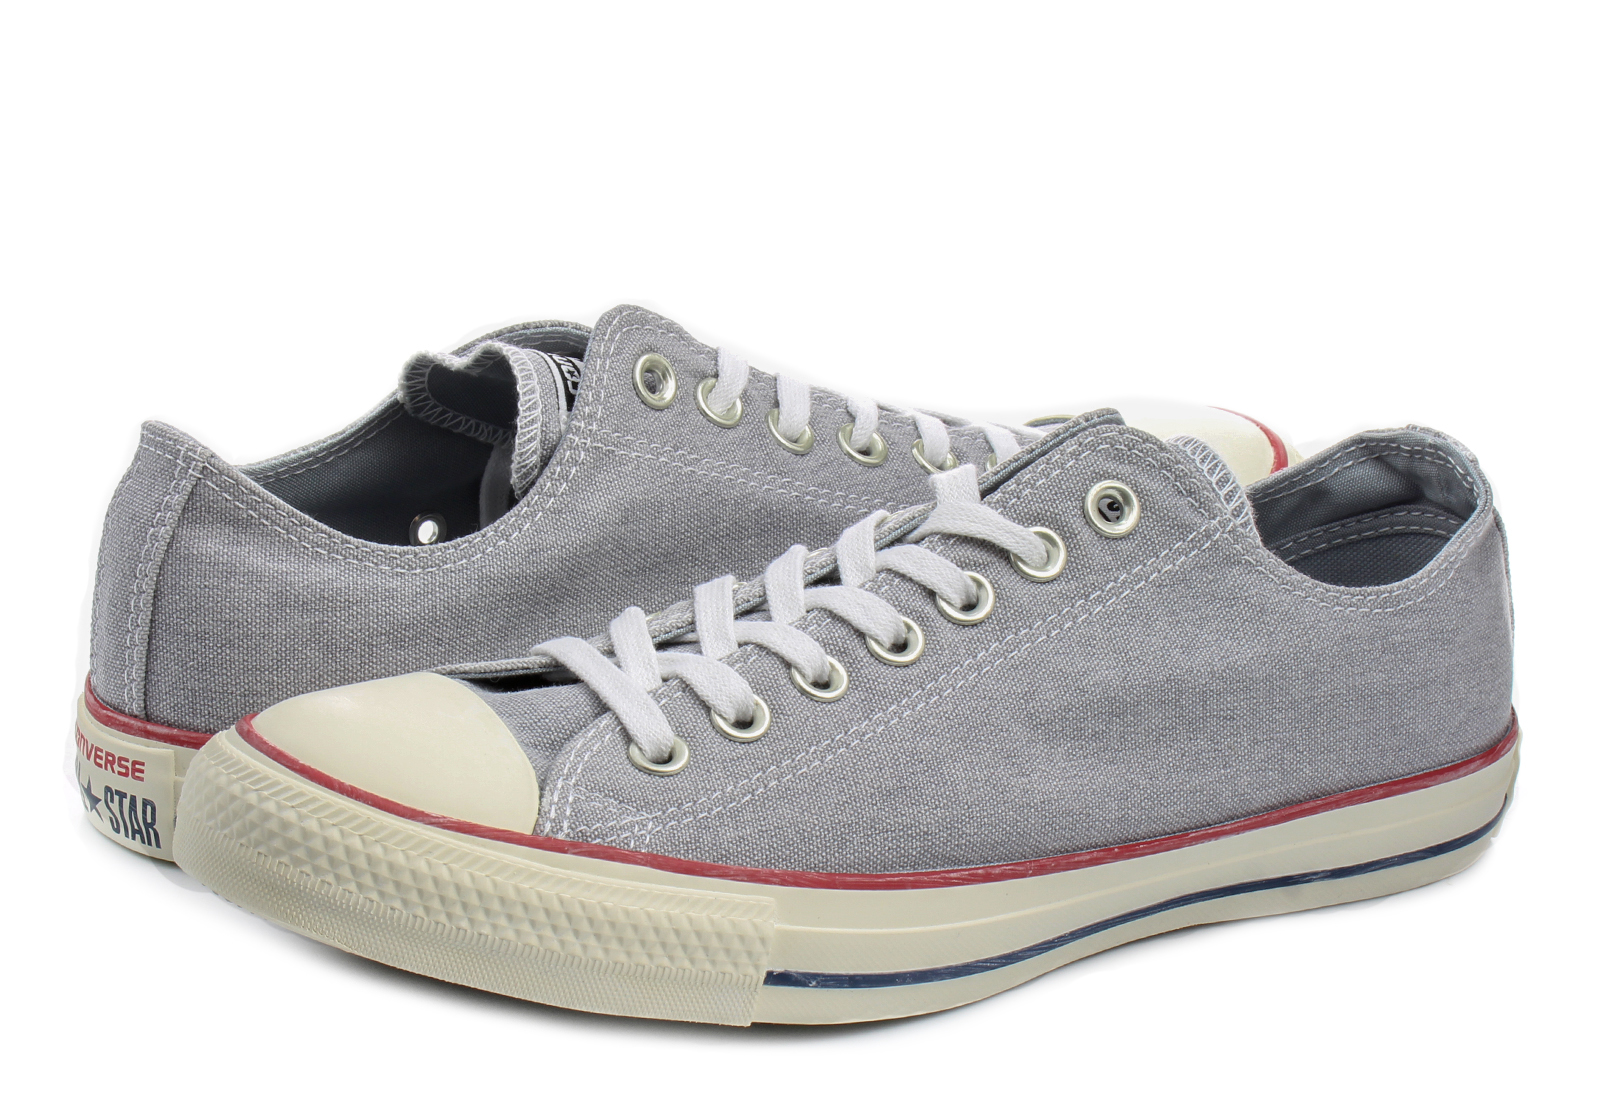 4fd6df0d34a Converse Sneakers - Chuck Taylor All Star Distressed Ox - 159541C ...